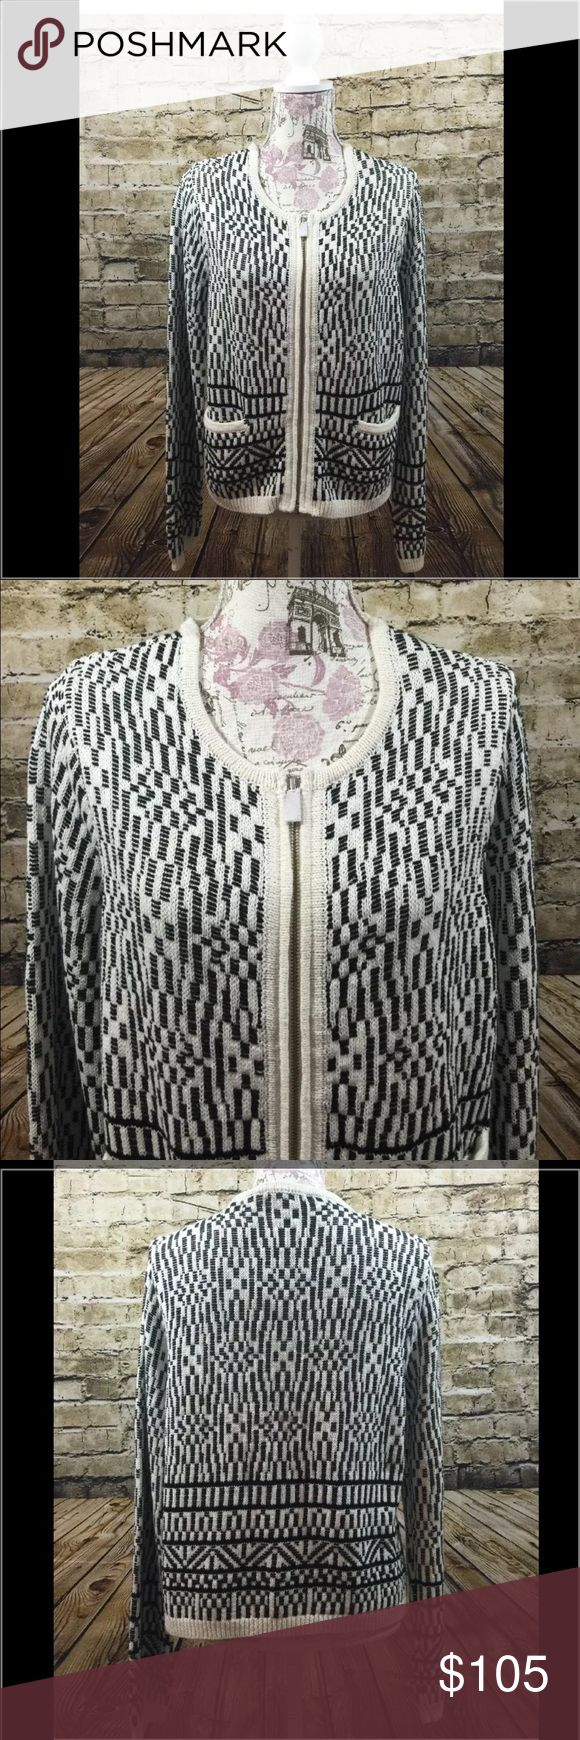 """Joie NWT Women's Zip up Cardigan L NWT Joie Zip up Cardigan with 2 pockets in front. 55% Linen/ 45% Cotton. Size Large. Black and white design, so cute! Measurements: (Shoulder to shoulder: 16"""") (Pit to pit: 20"""") (Length: 22.5"""") (Sleeve: 27"""") Joie Jackets & Coats"""